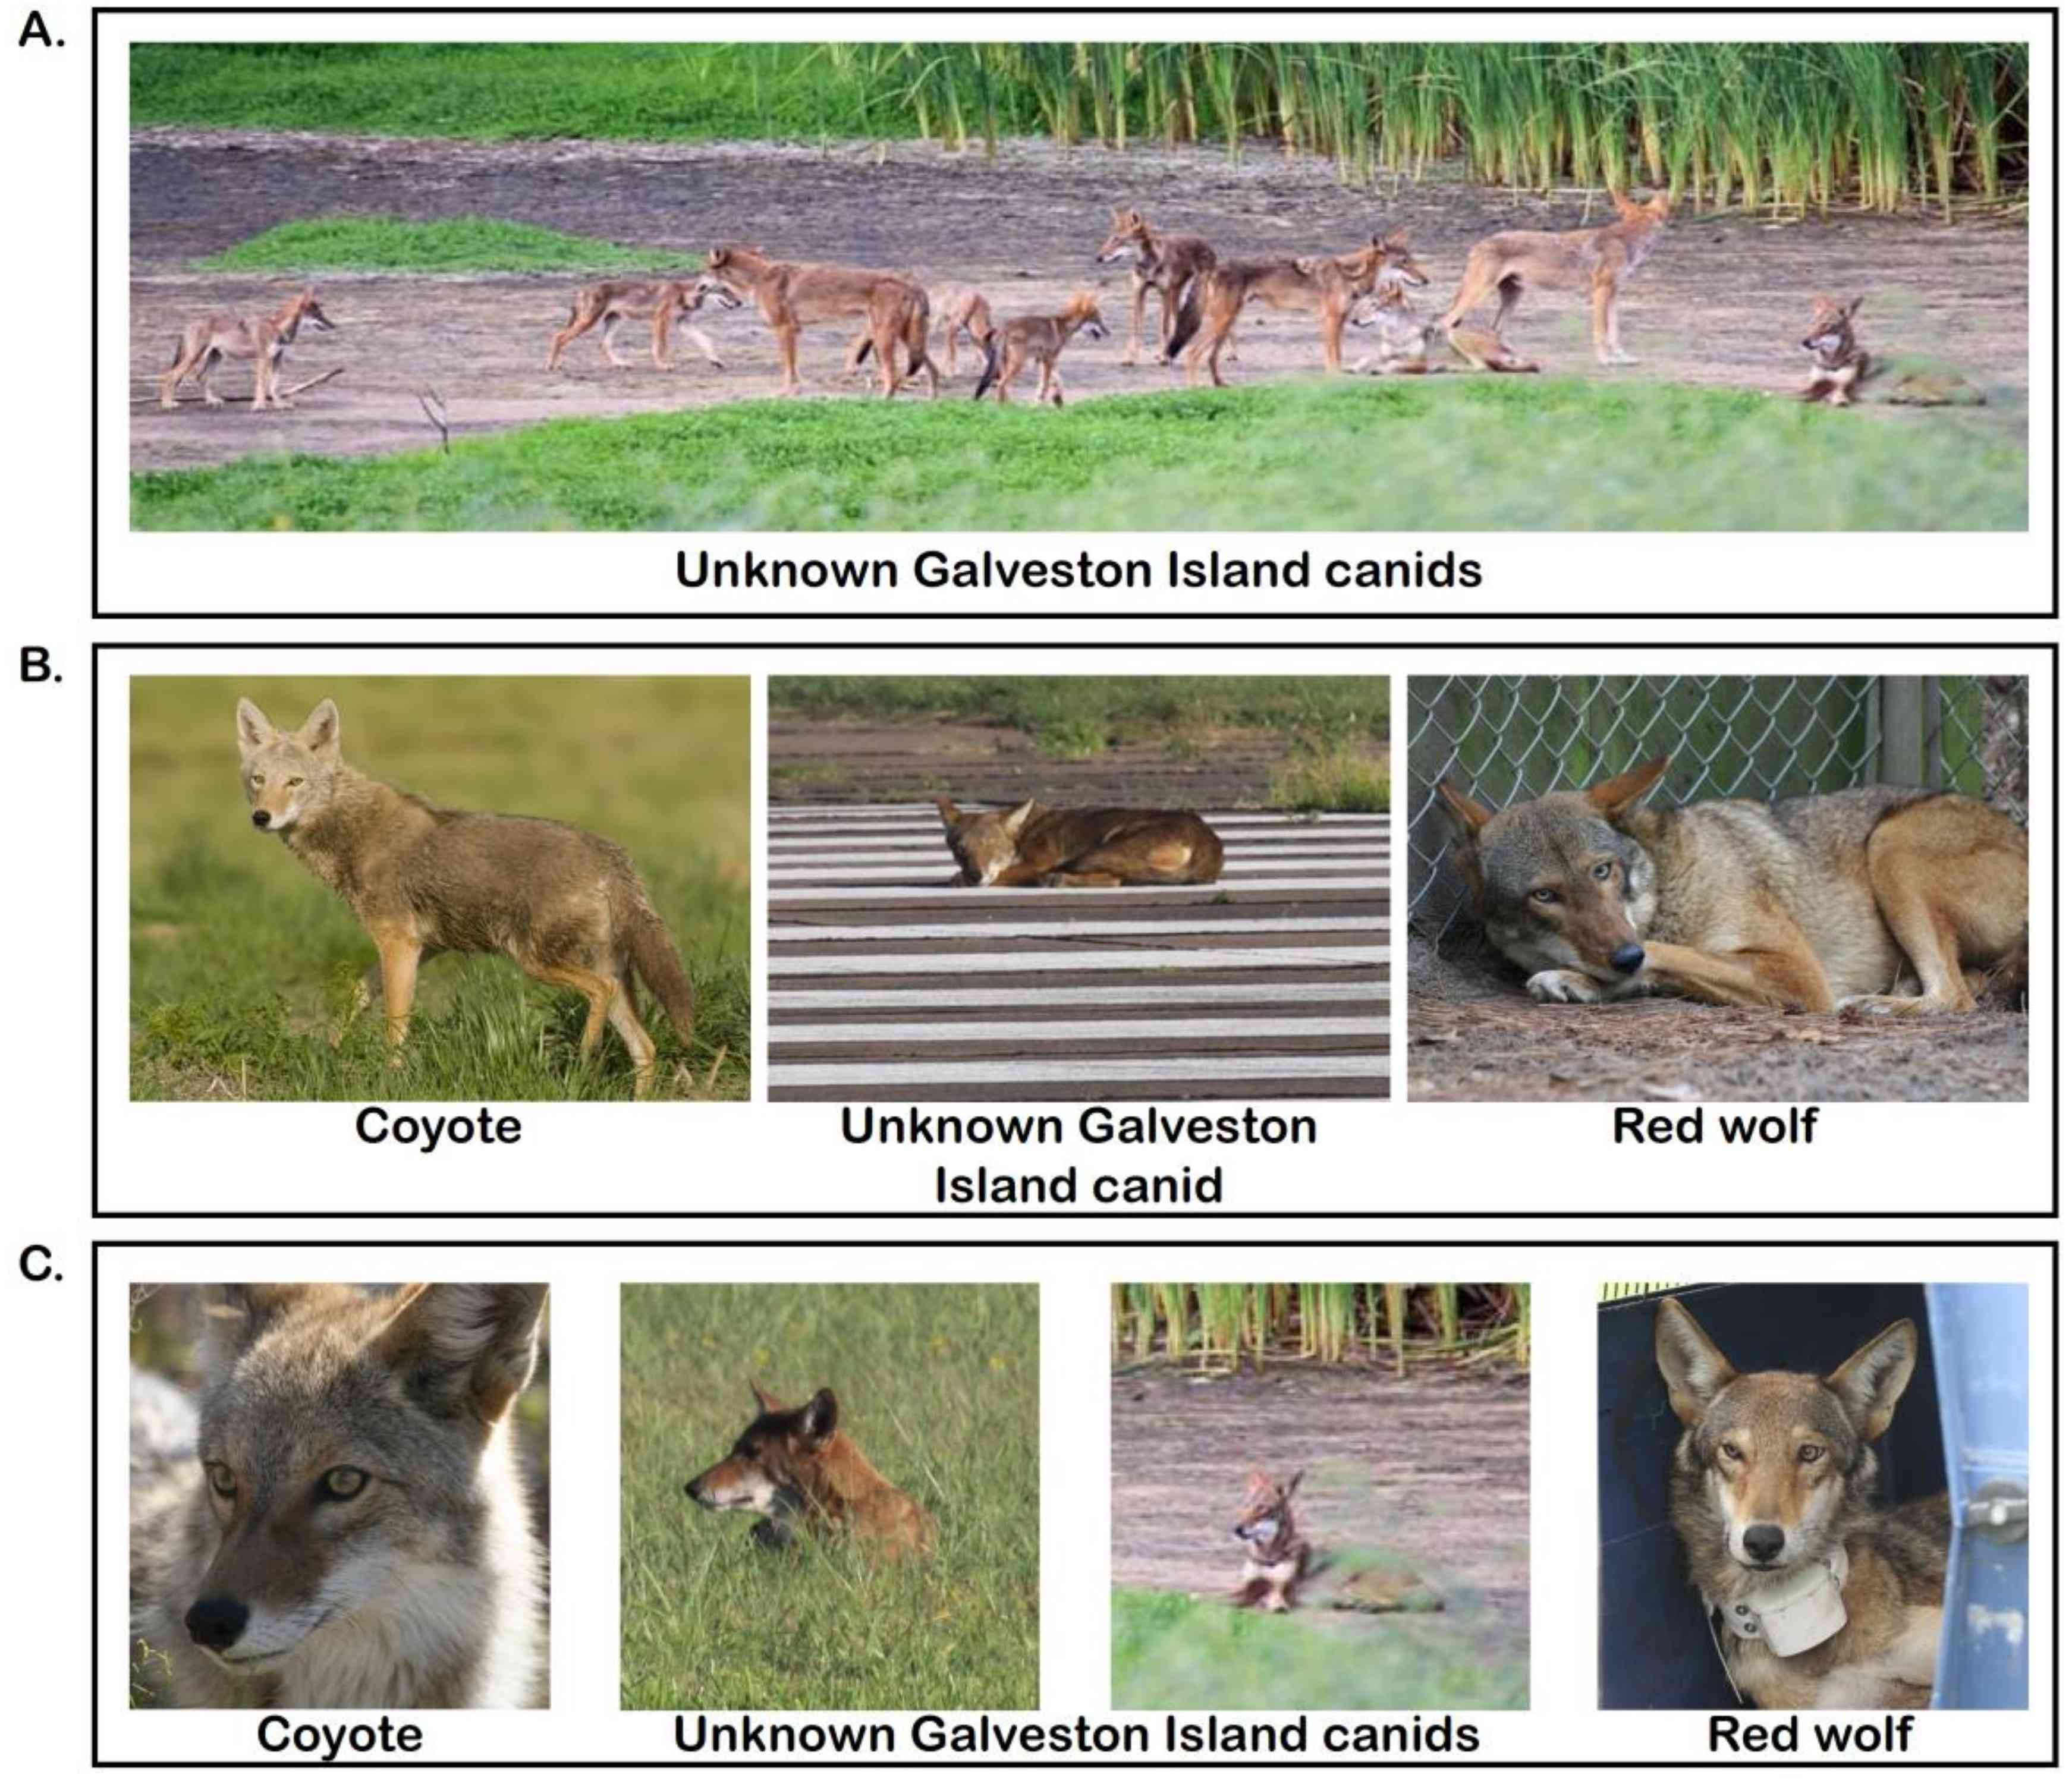 photographic comparison of coyotes, red wolves and the Galveston Island canids